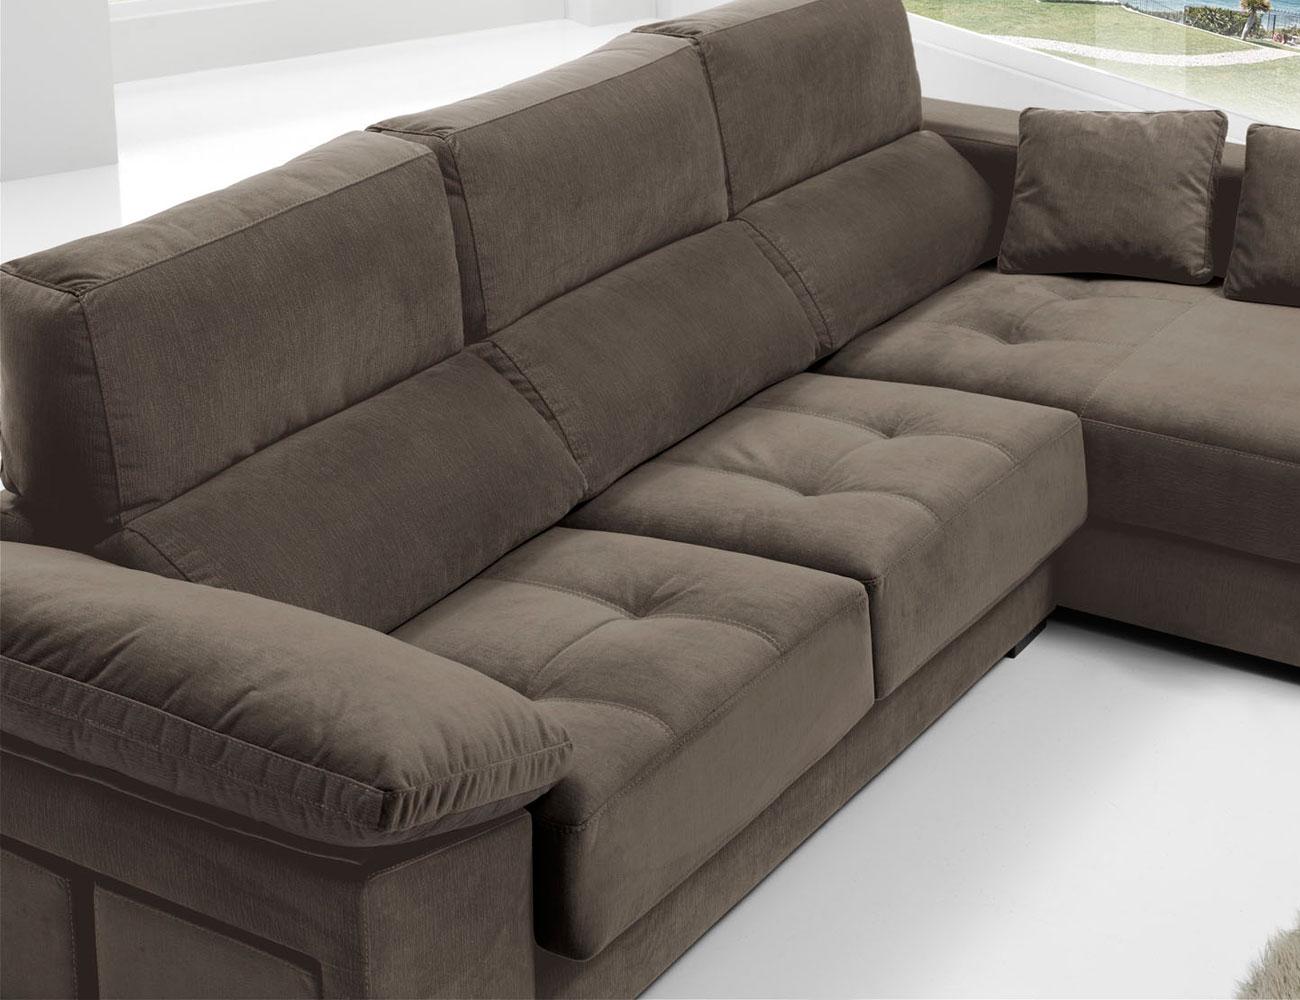 Sofa chaiselongue anti manchas bering pouf 232